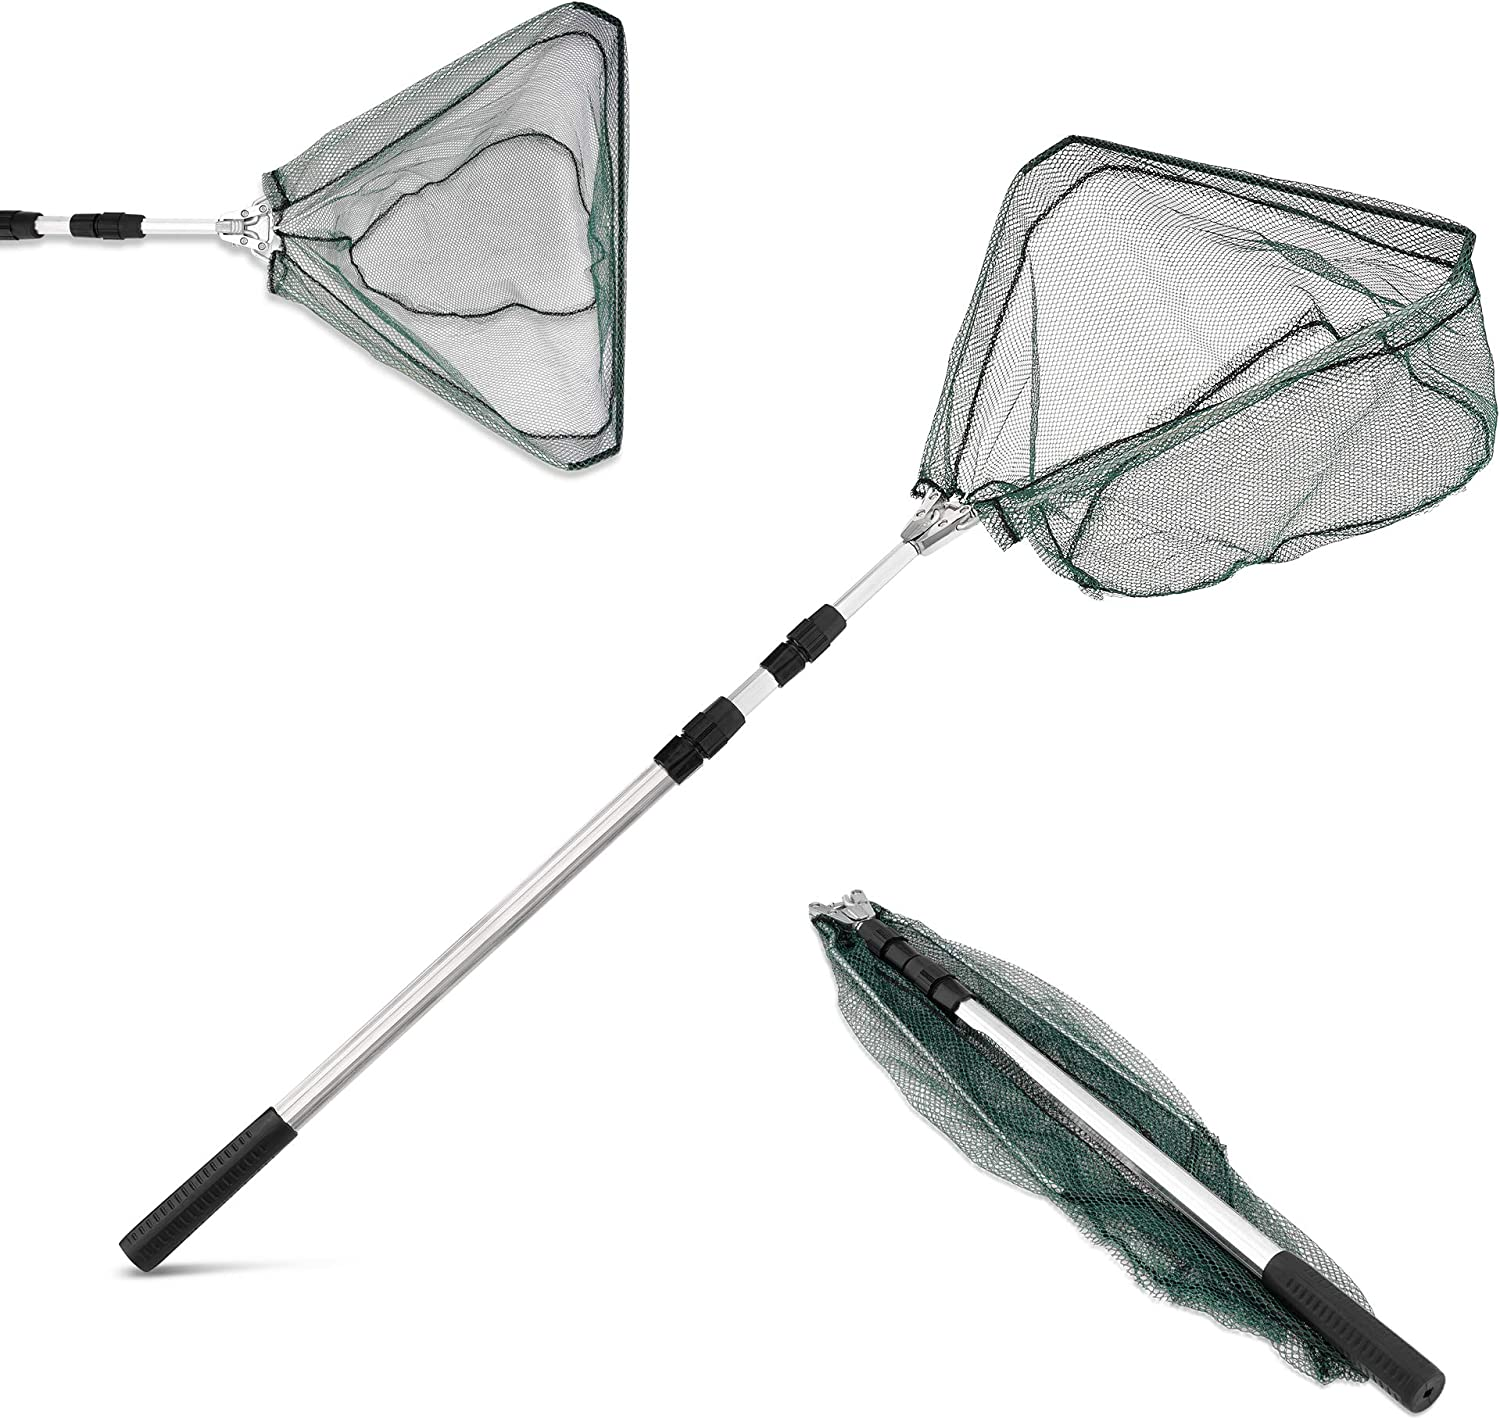 Robust Mechanism /& Easy Store Extends to 67 Inches Durable Metal Rod with Anti-Slip Rubber Grip Telescopic Folding Landing Fishing Net Net Weight 380 Grams